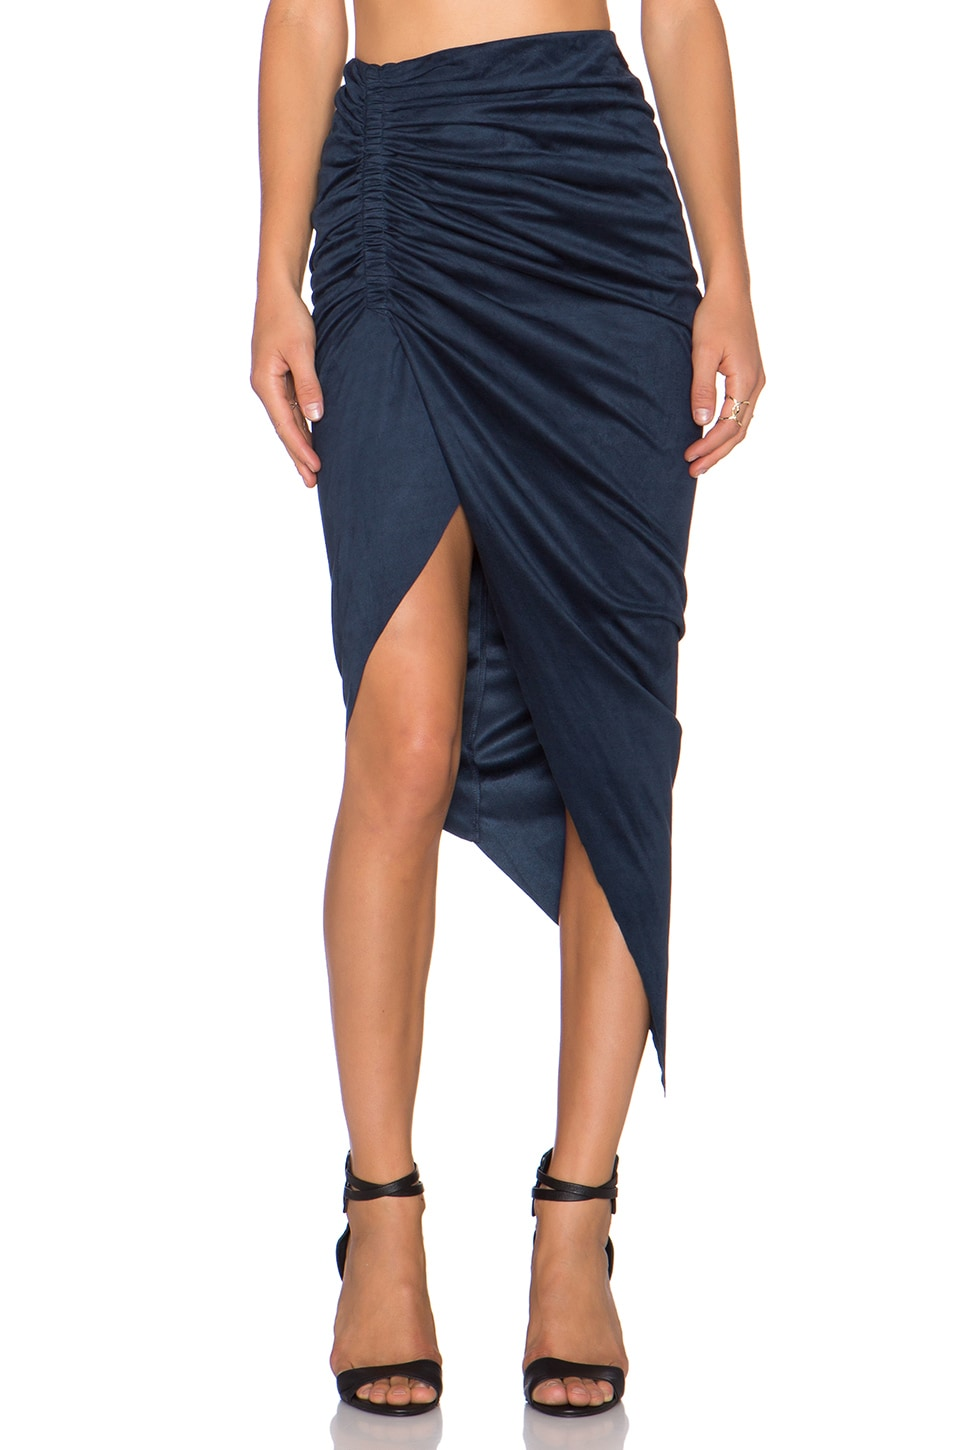 Bardot Sueded Ruched Skirt in Navy